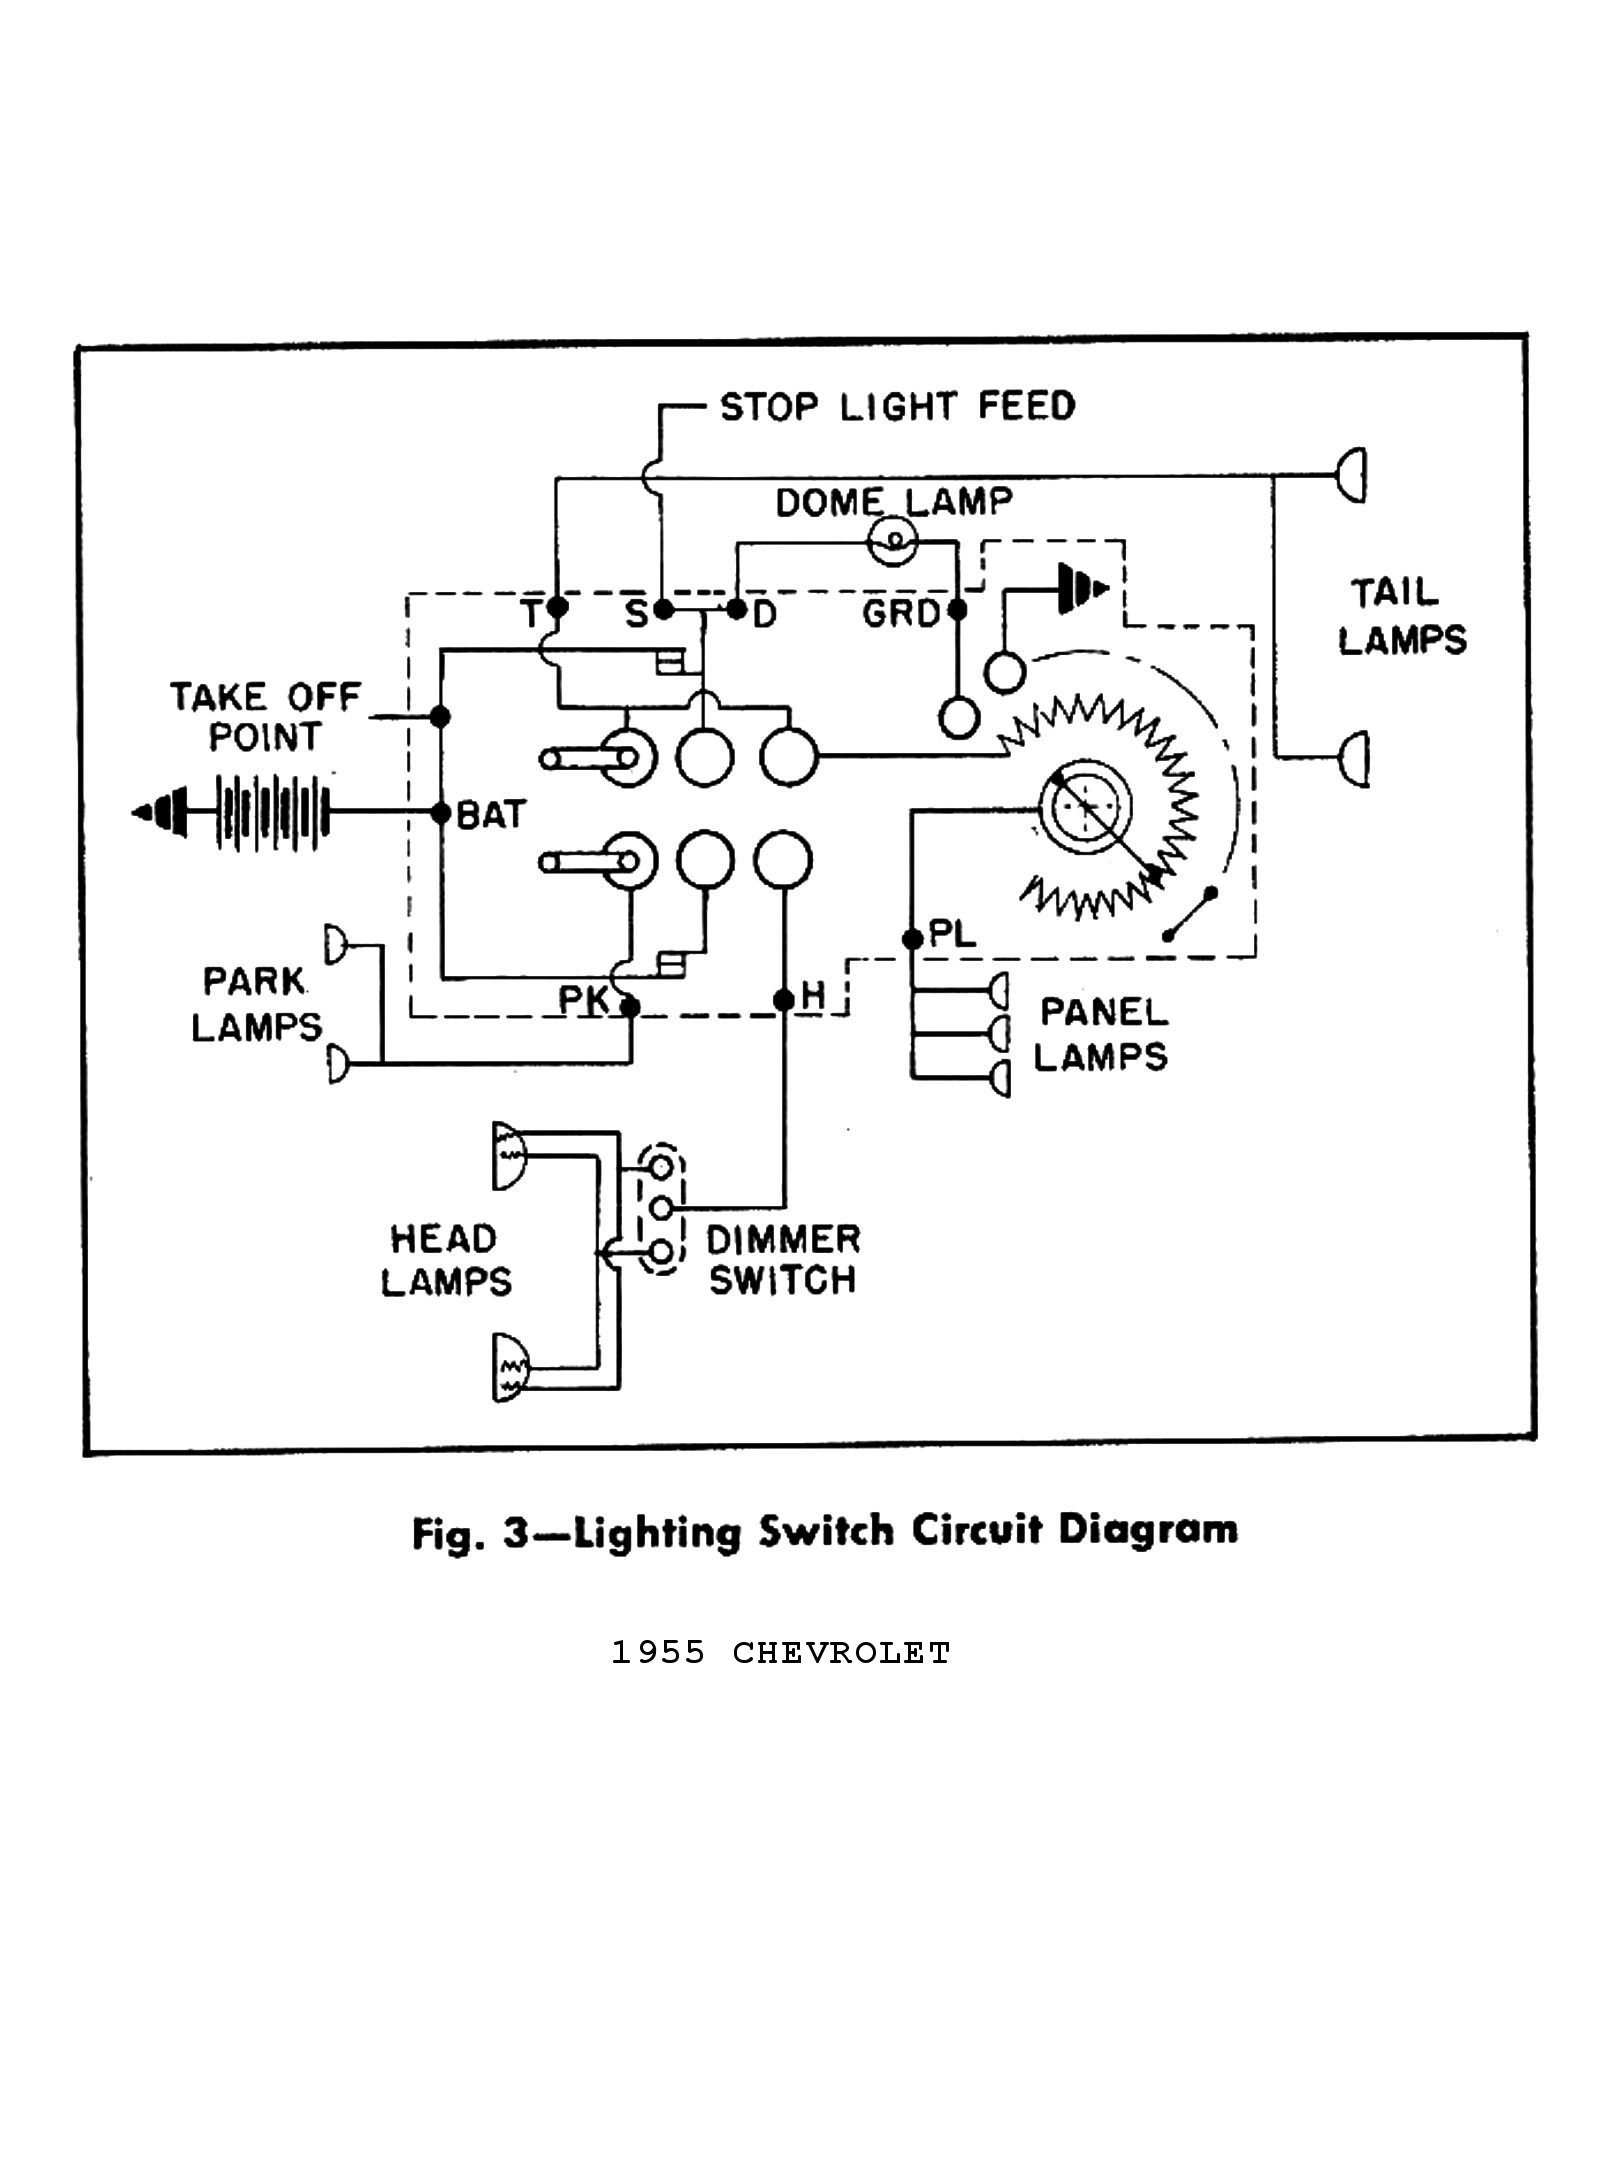 55ctsm1203 chevy wiring diagrams chevy ignition switch diagram at crackthecode.co